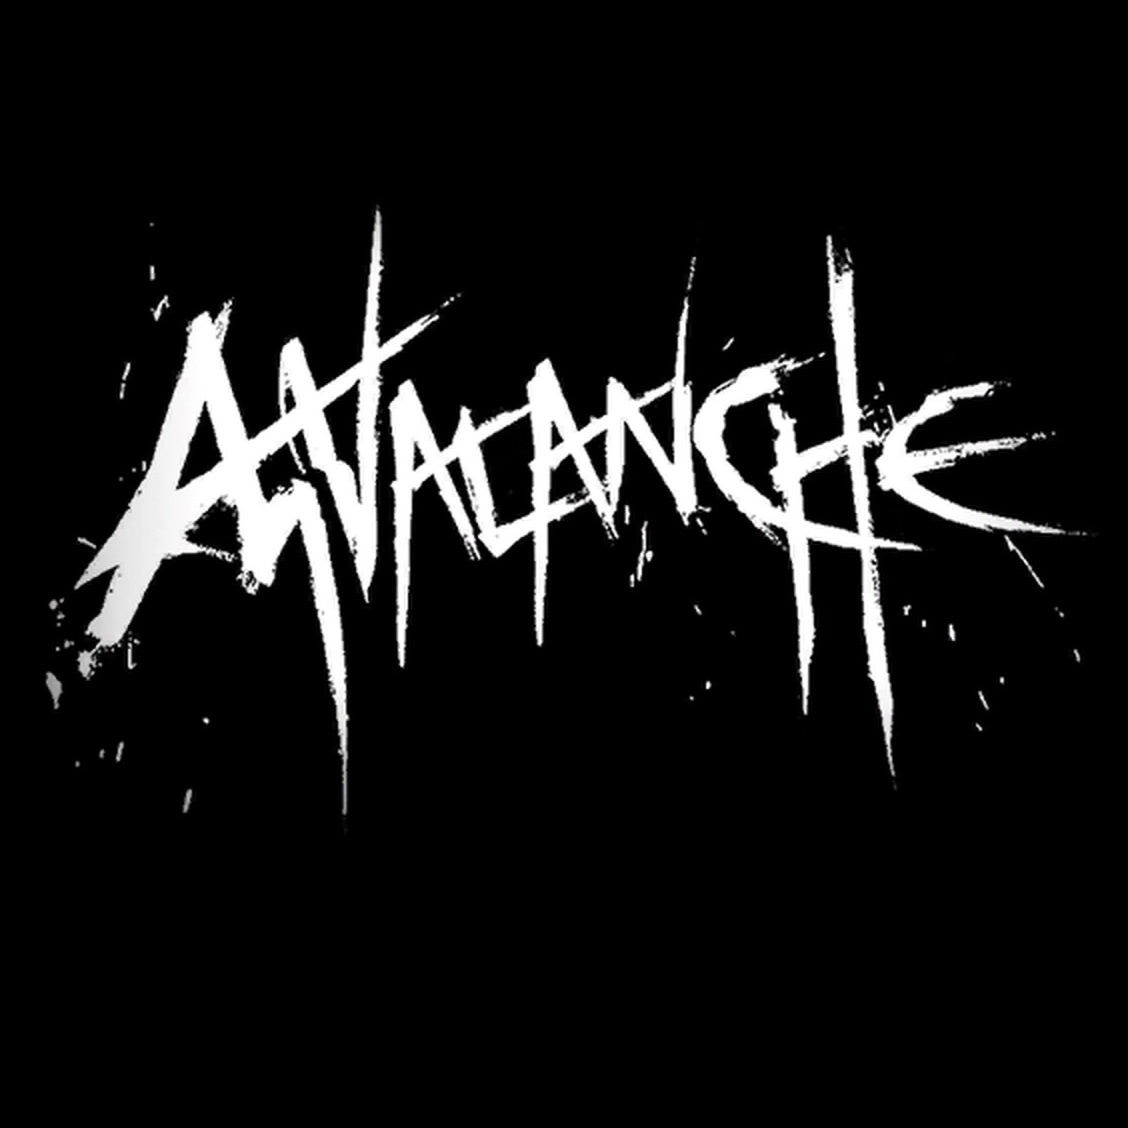 Avalanche (group)